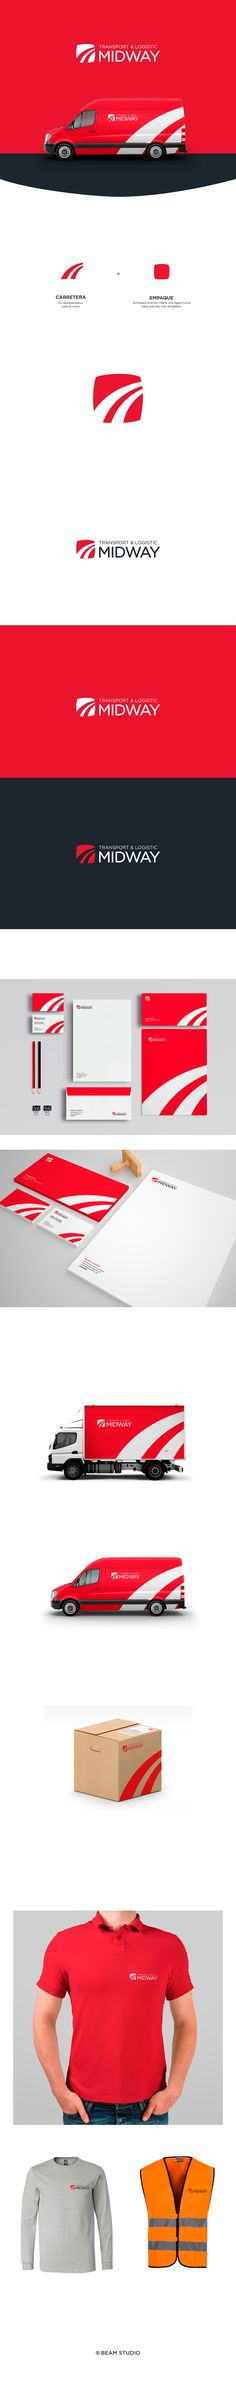 MIDWAY LOGISTIC on Behance